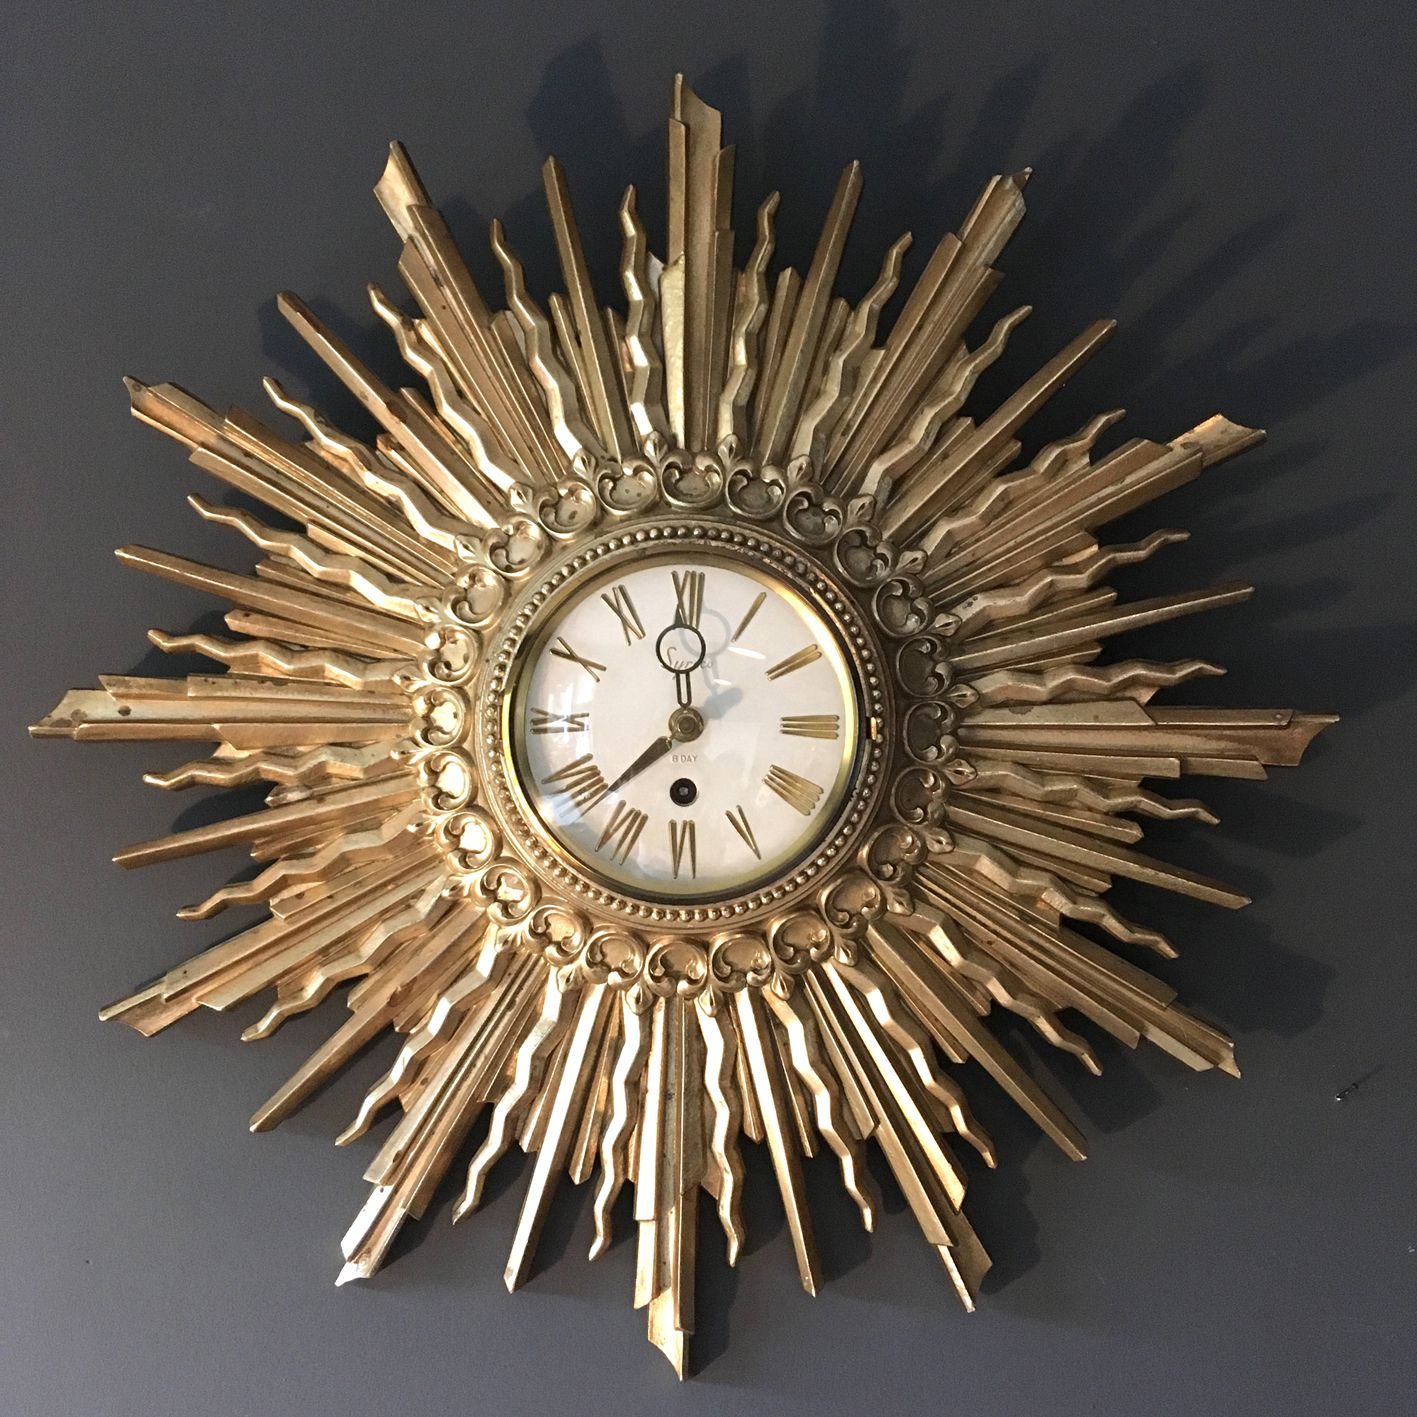 1963 Syroco Sunburst Wall Clock American Clock Made In The Usa 8 Day Movement Beautiful Gold Wooden Sunburst Design White F Clock Vintage Clock Wall Clock